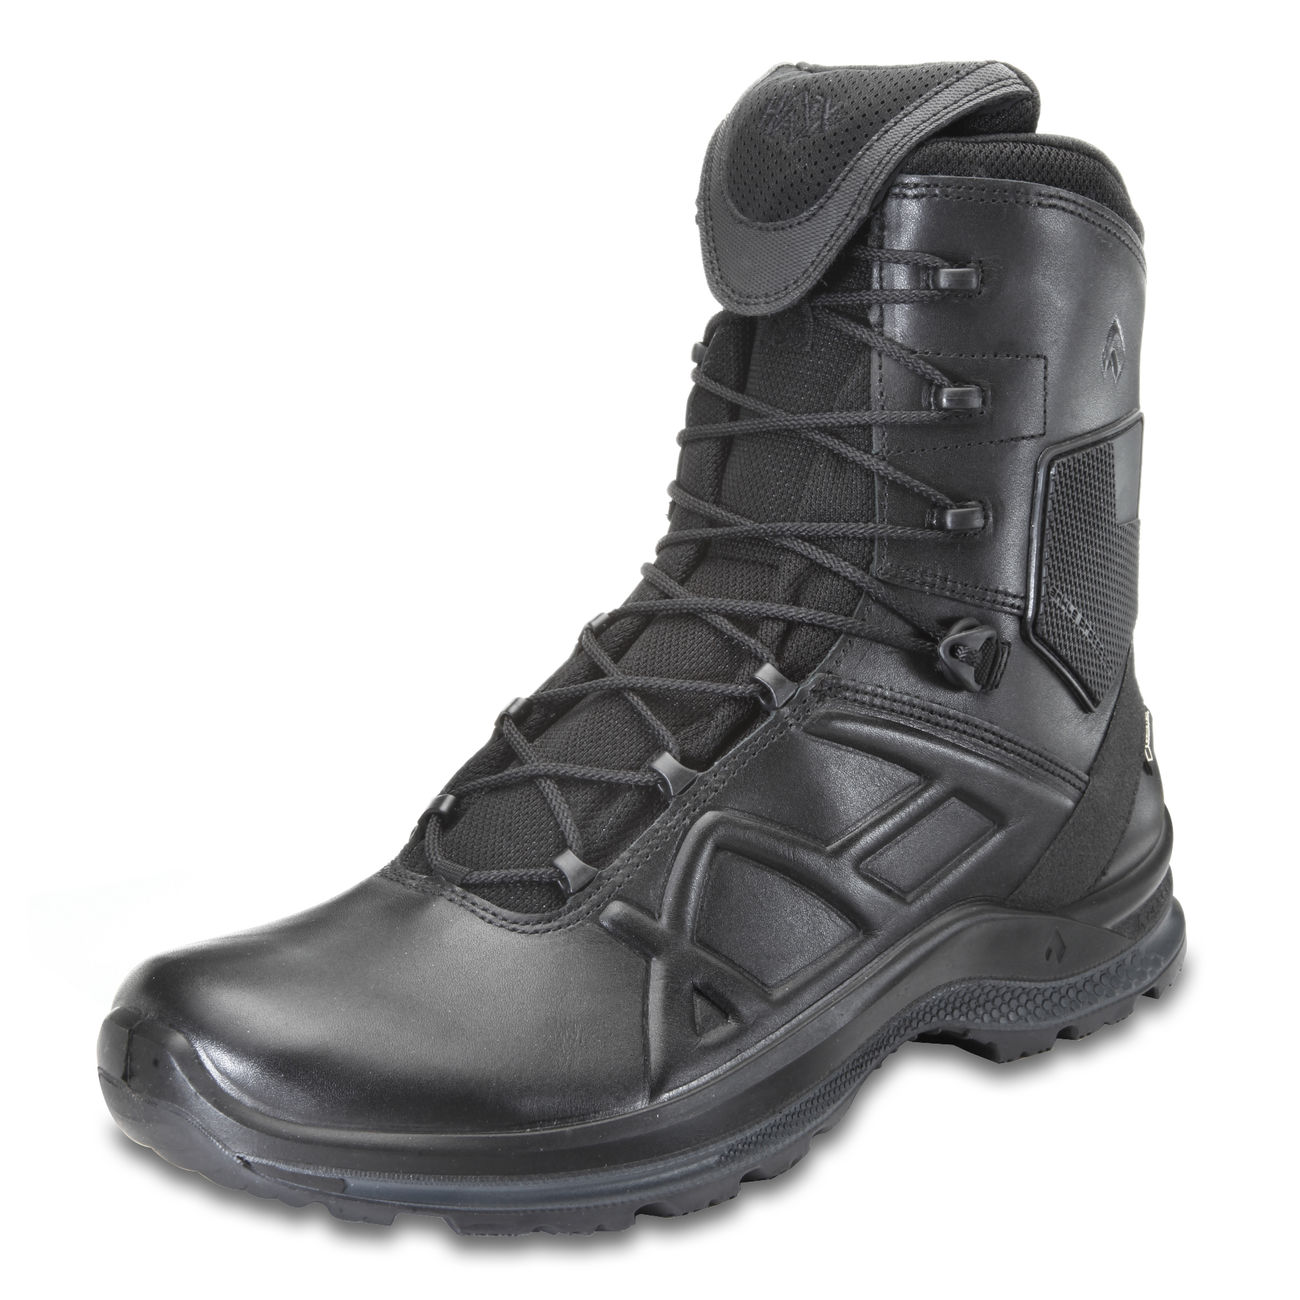 Haix Stiefel Black Eagle Tactical 2.0 High schwarz 6